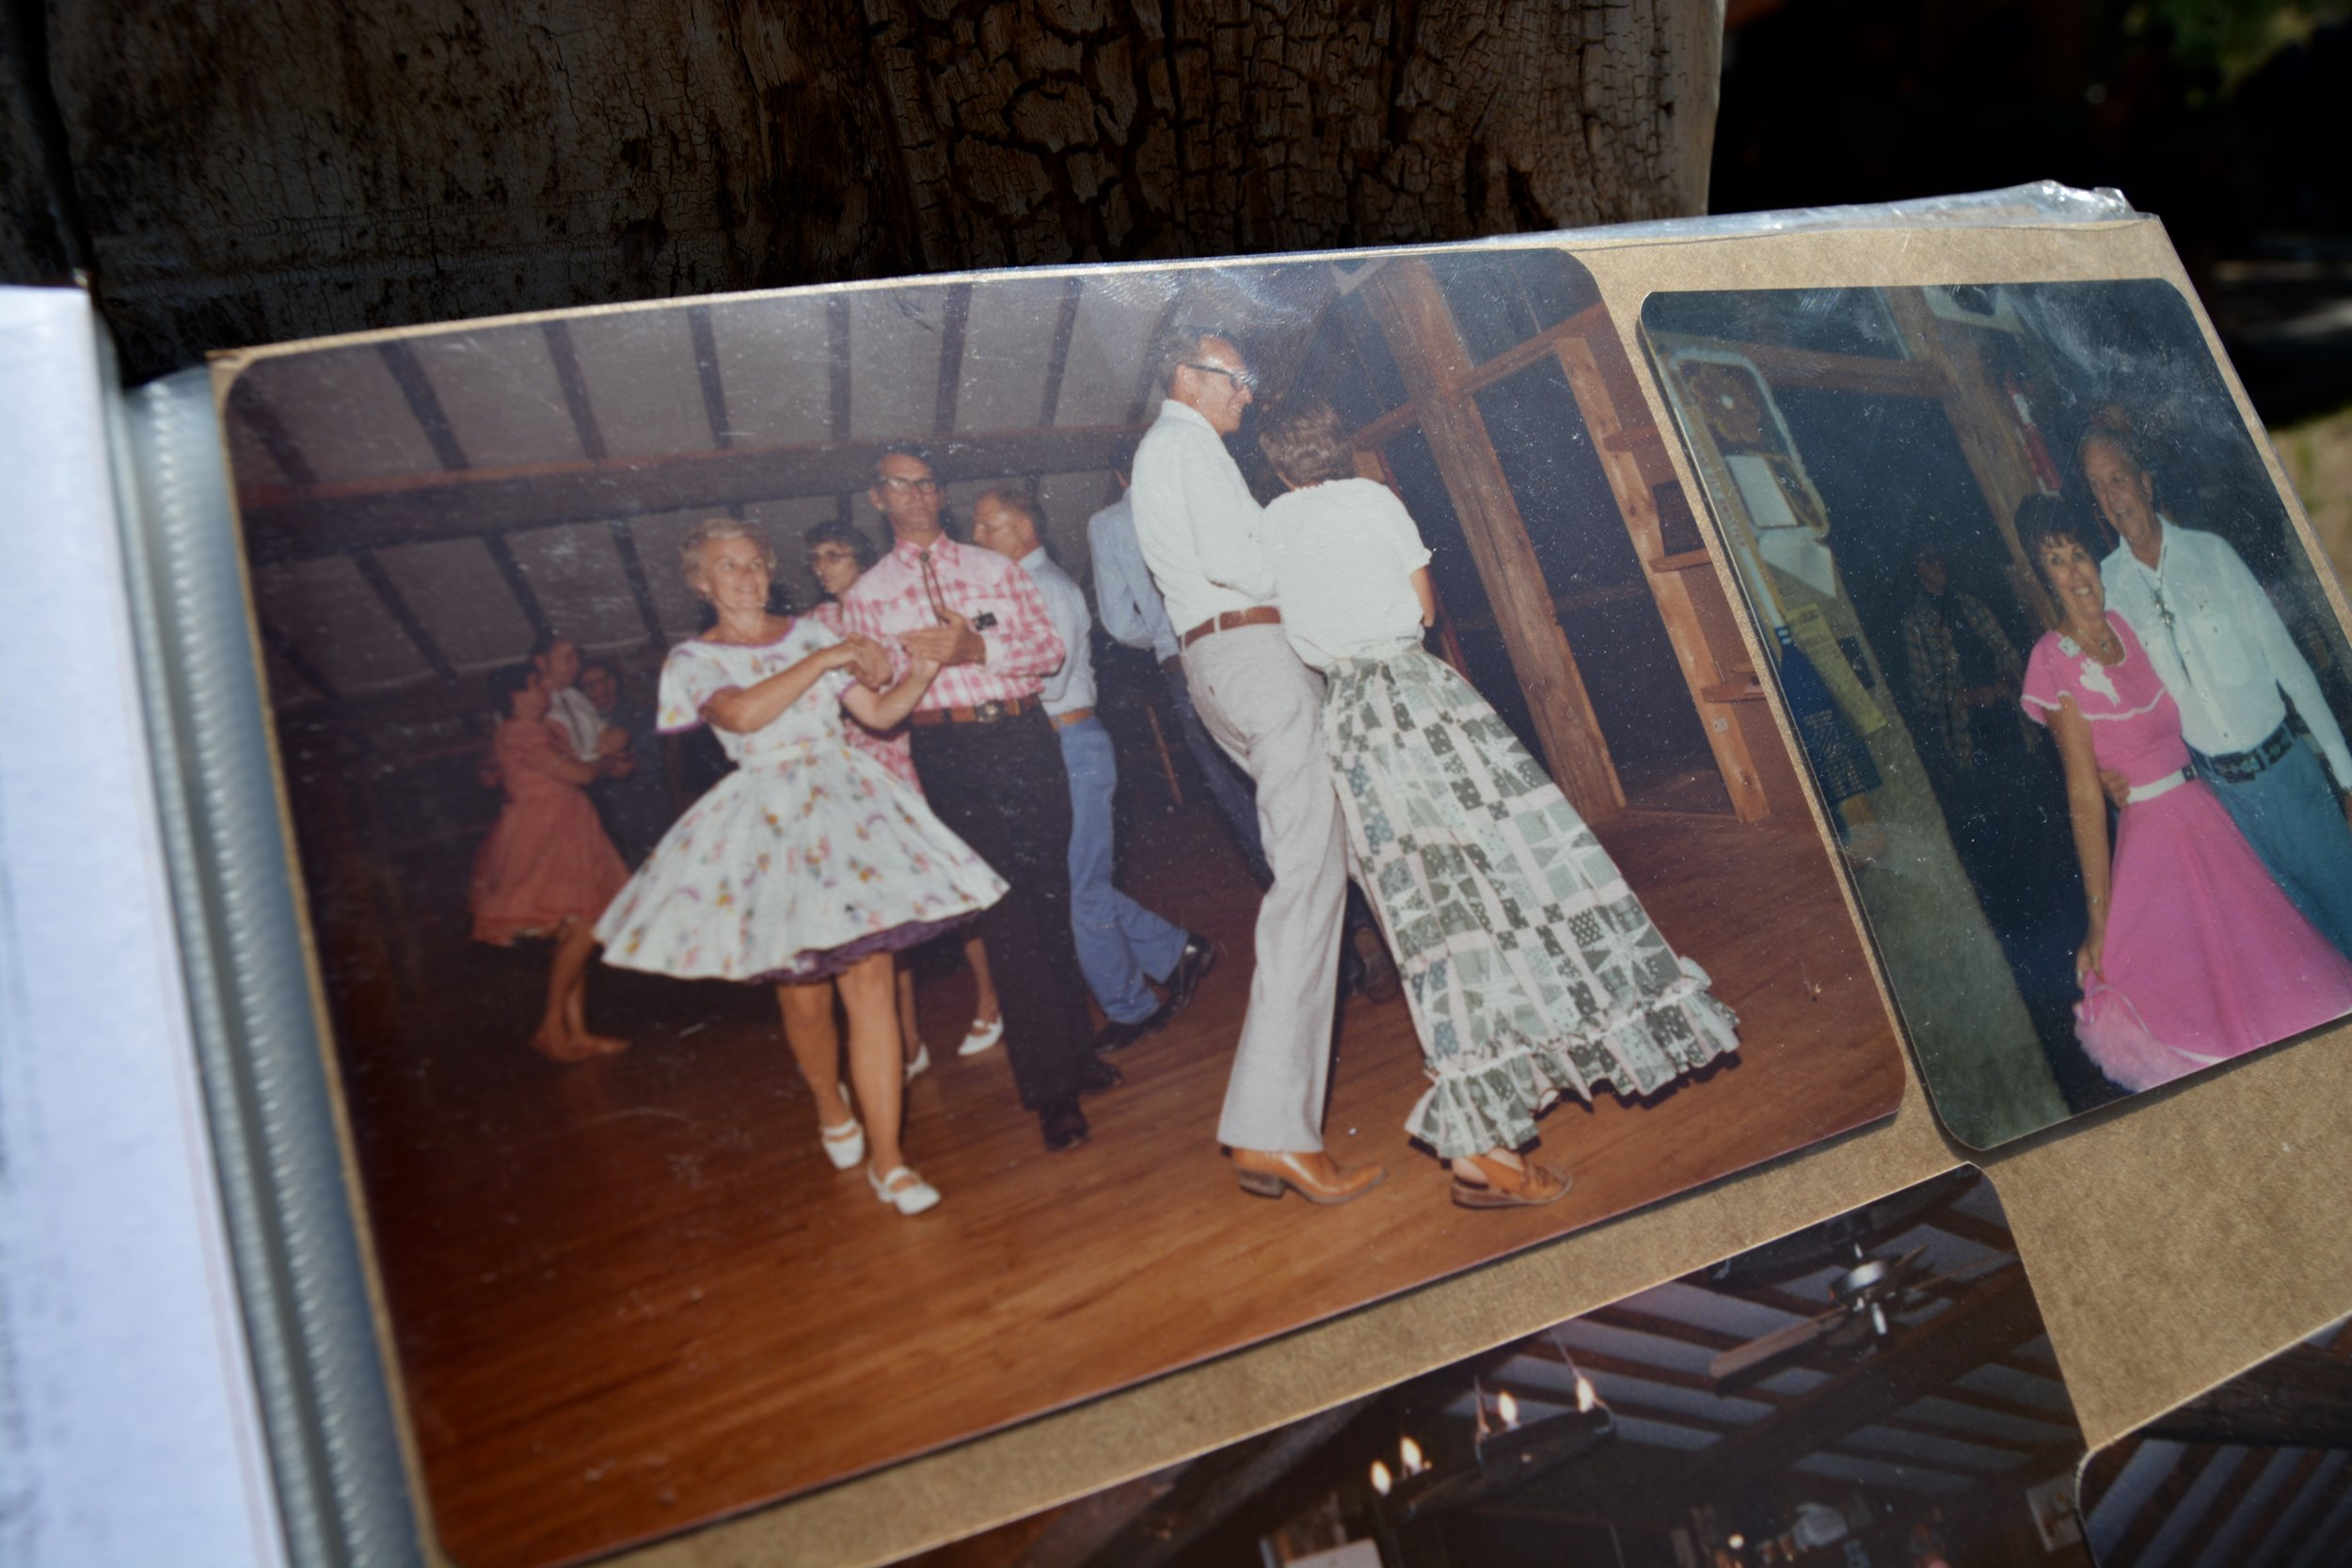 Barn dances at Parrish Ranch of the past.jpg